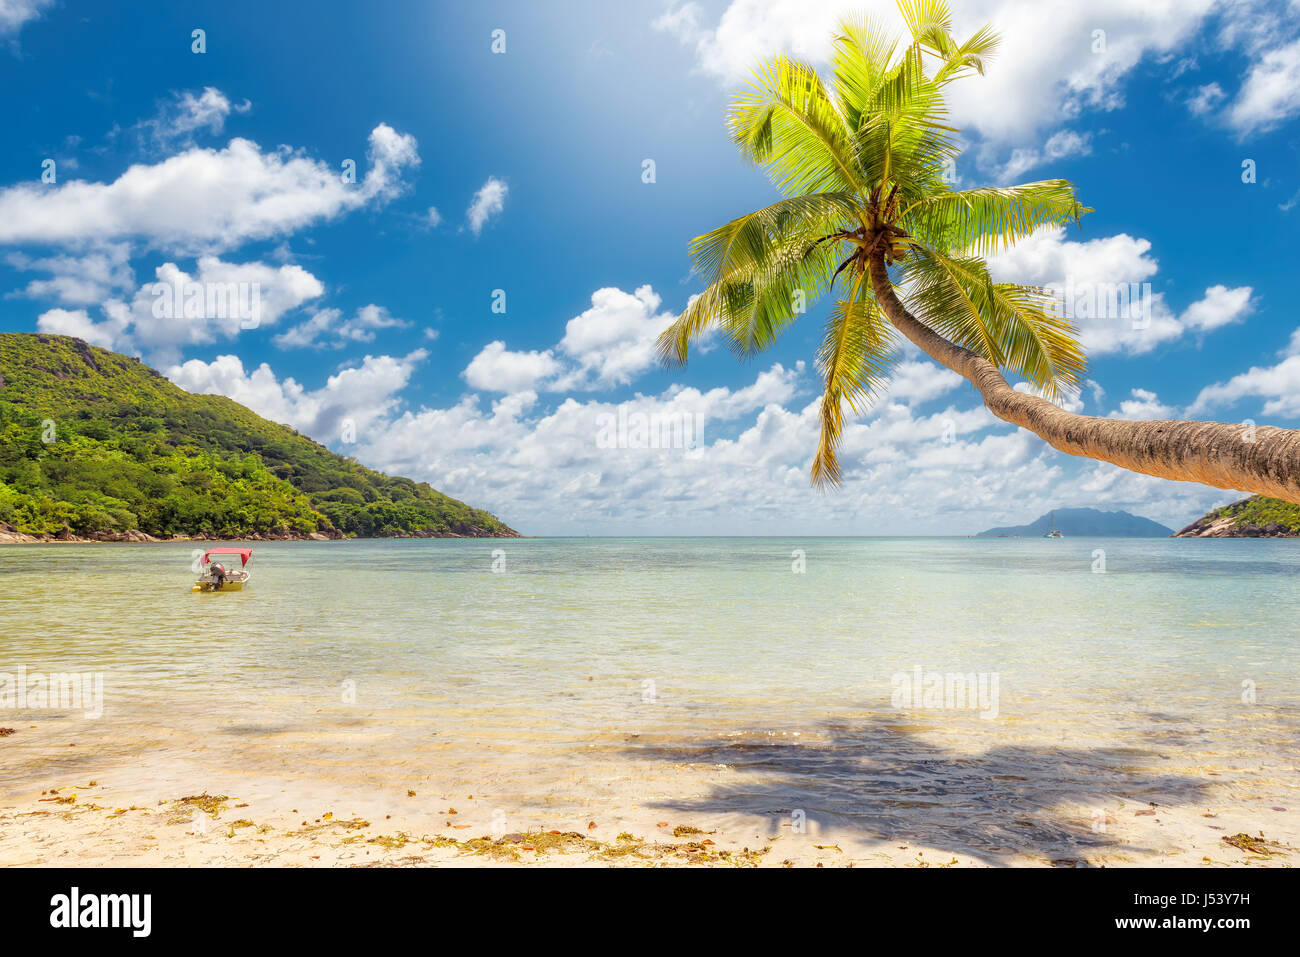 Palms on the beach under sea in sunny day - Stock Image